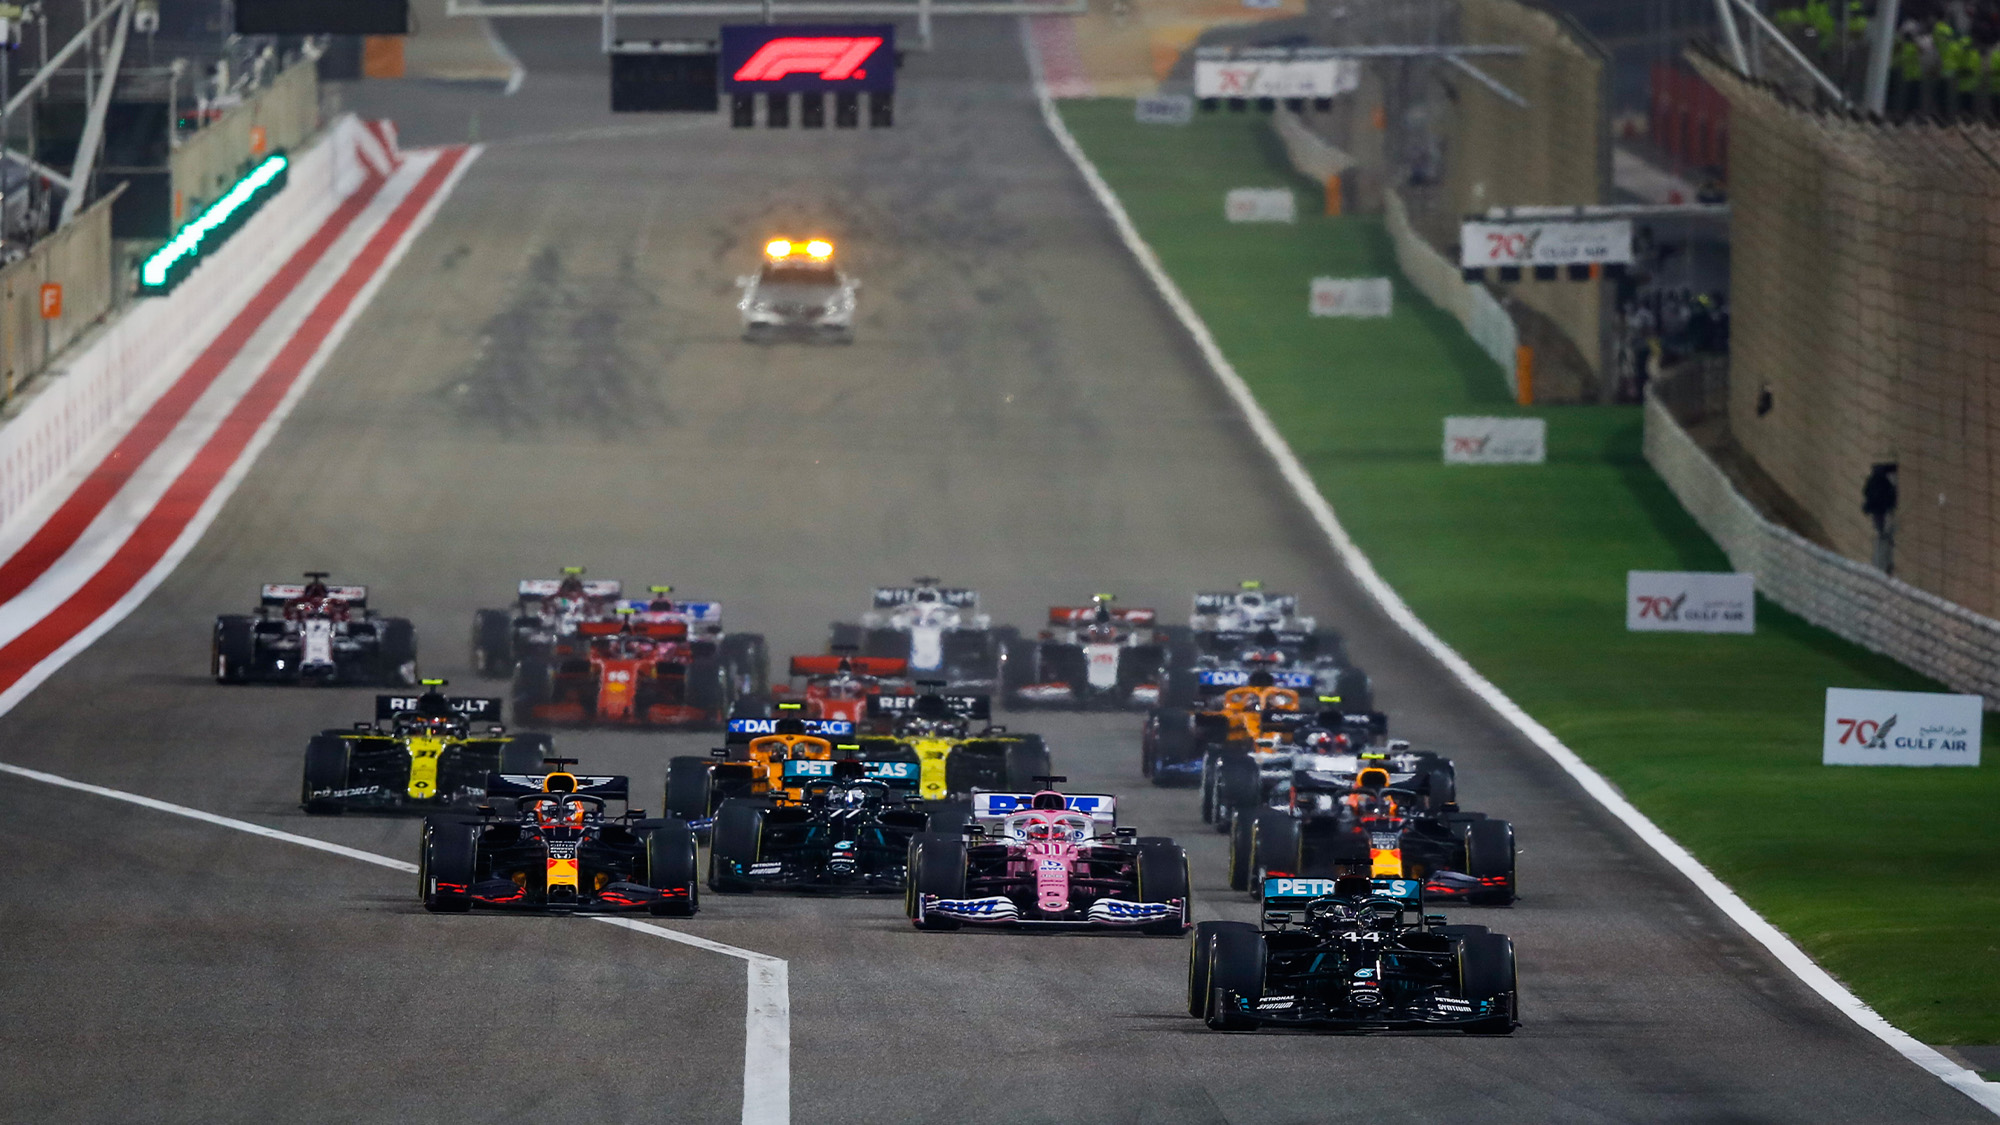 Lewis Hamilton leads at the restart of the 2020 F1 Bharain Grand Prix